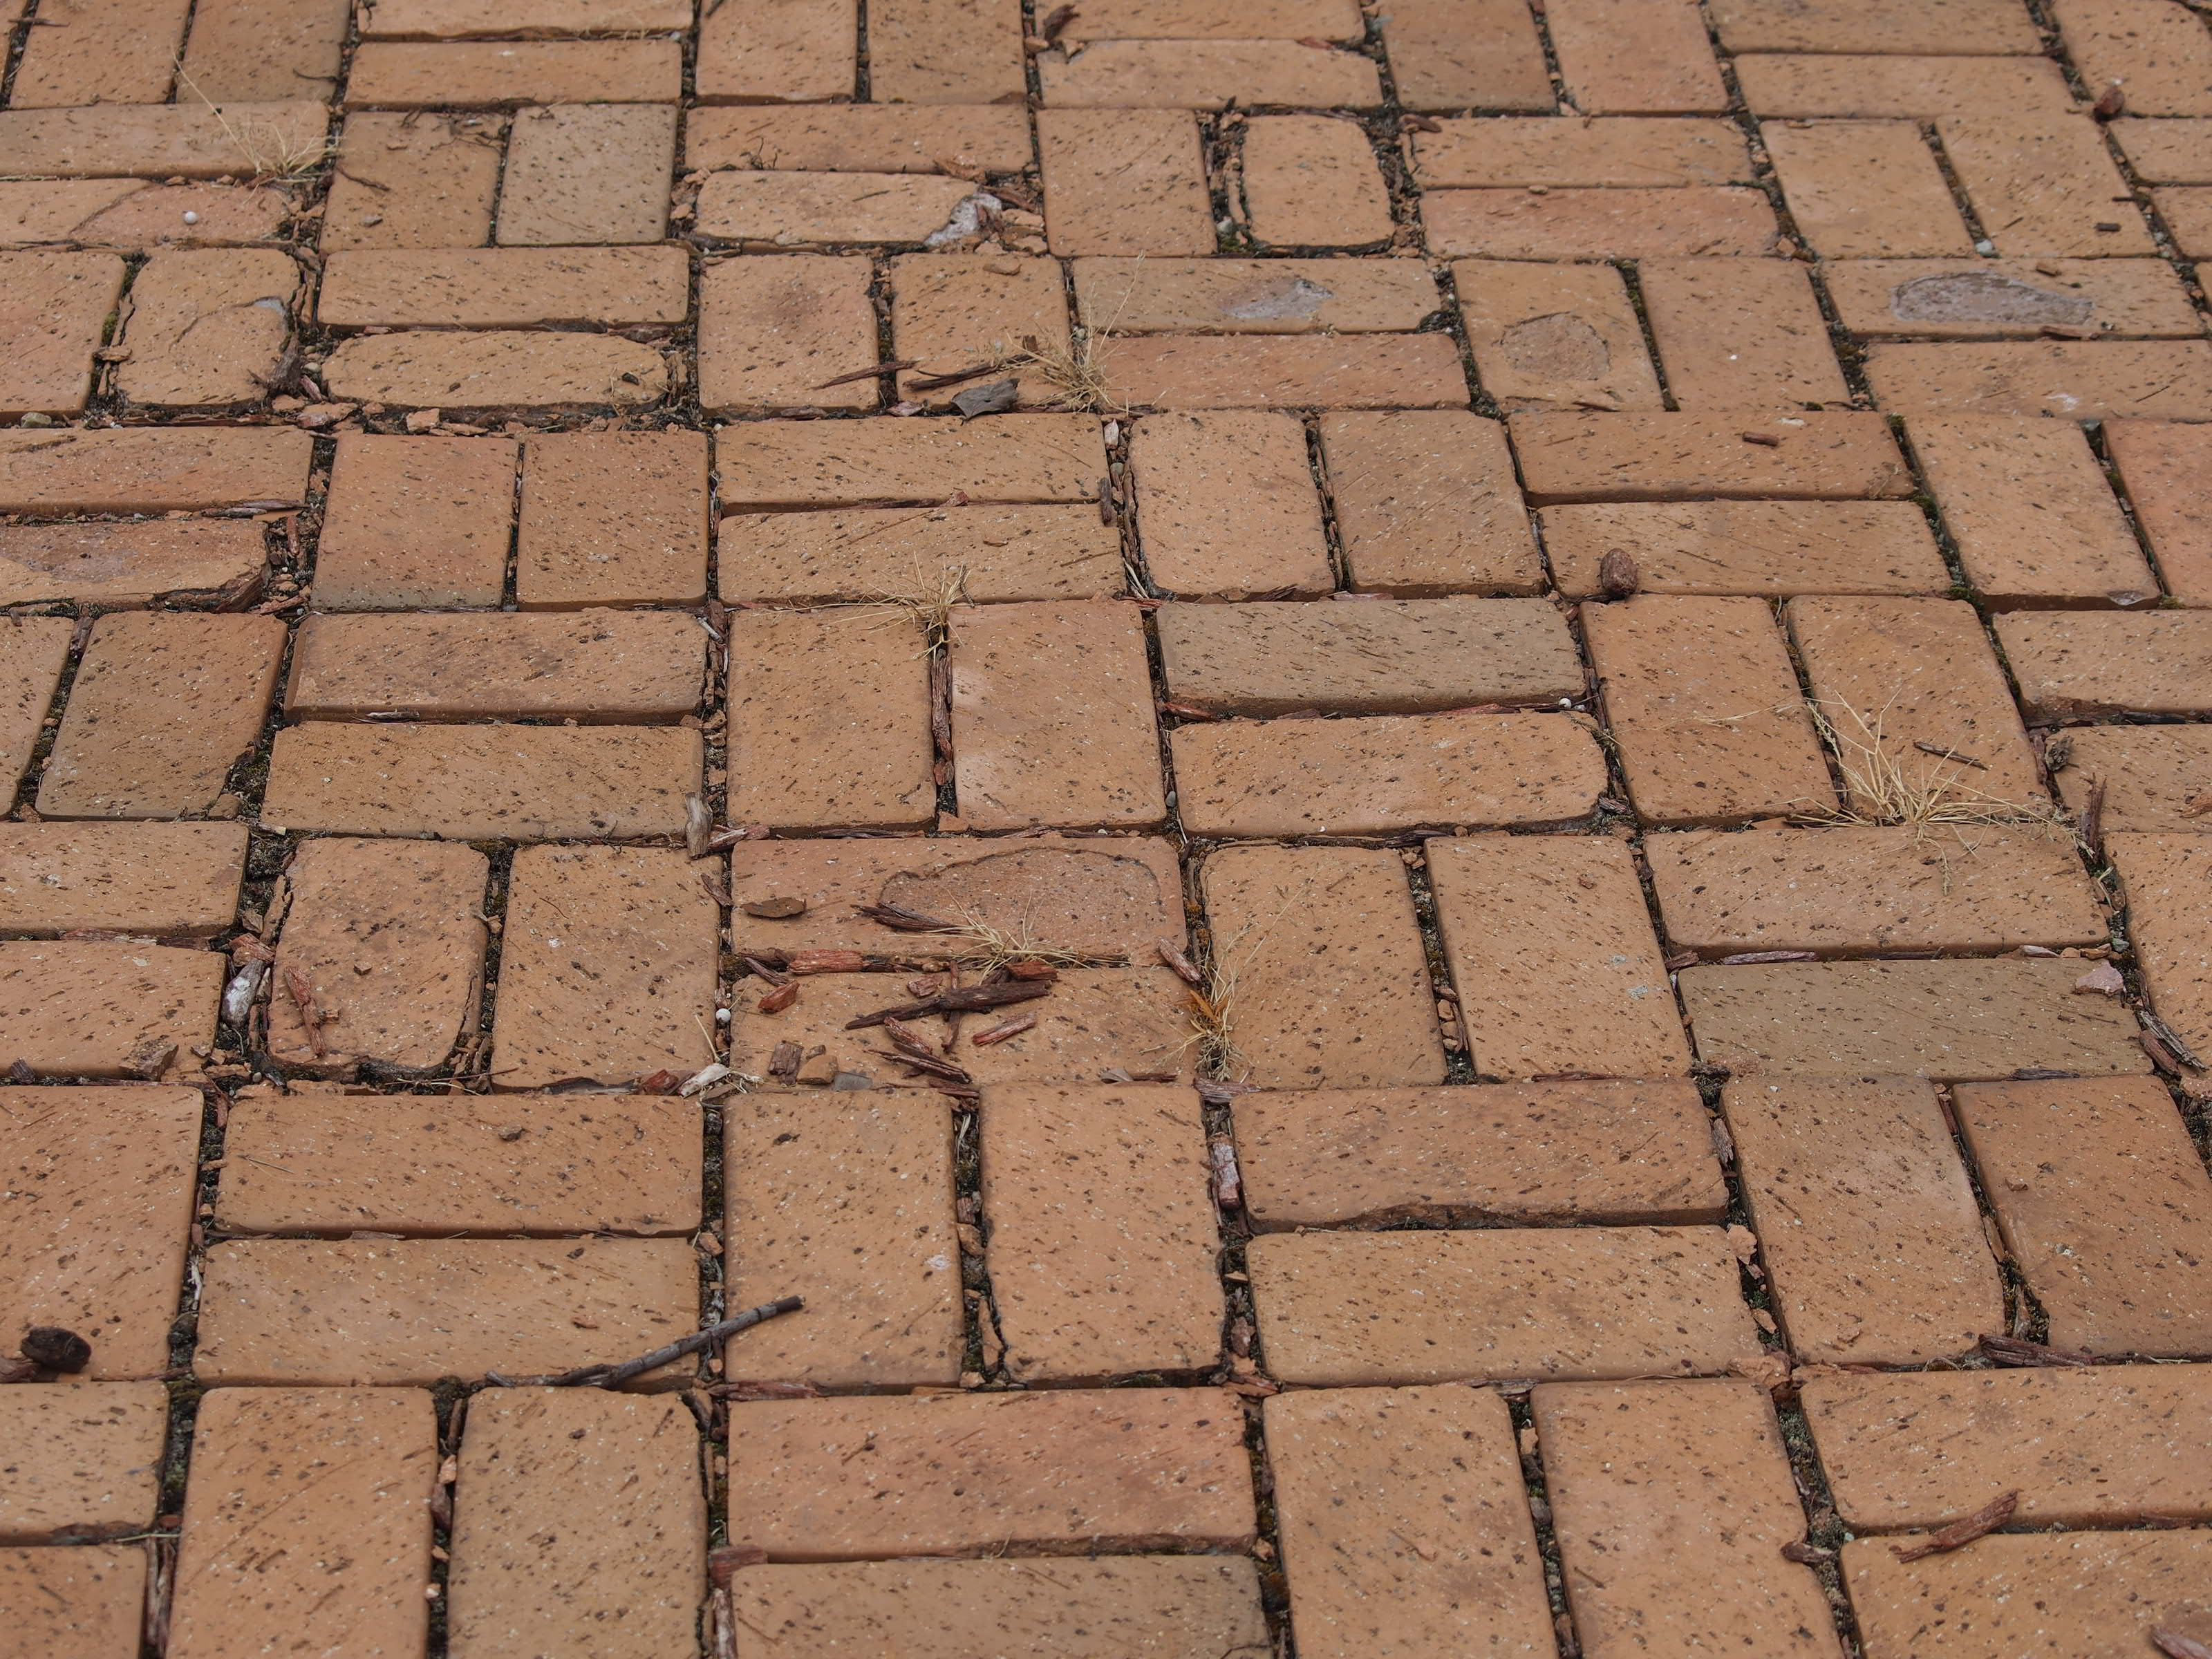 Photos of Brick Patterns